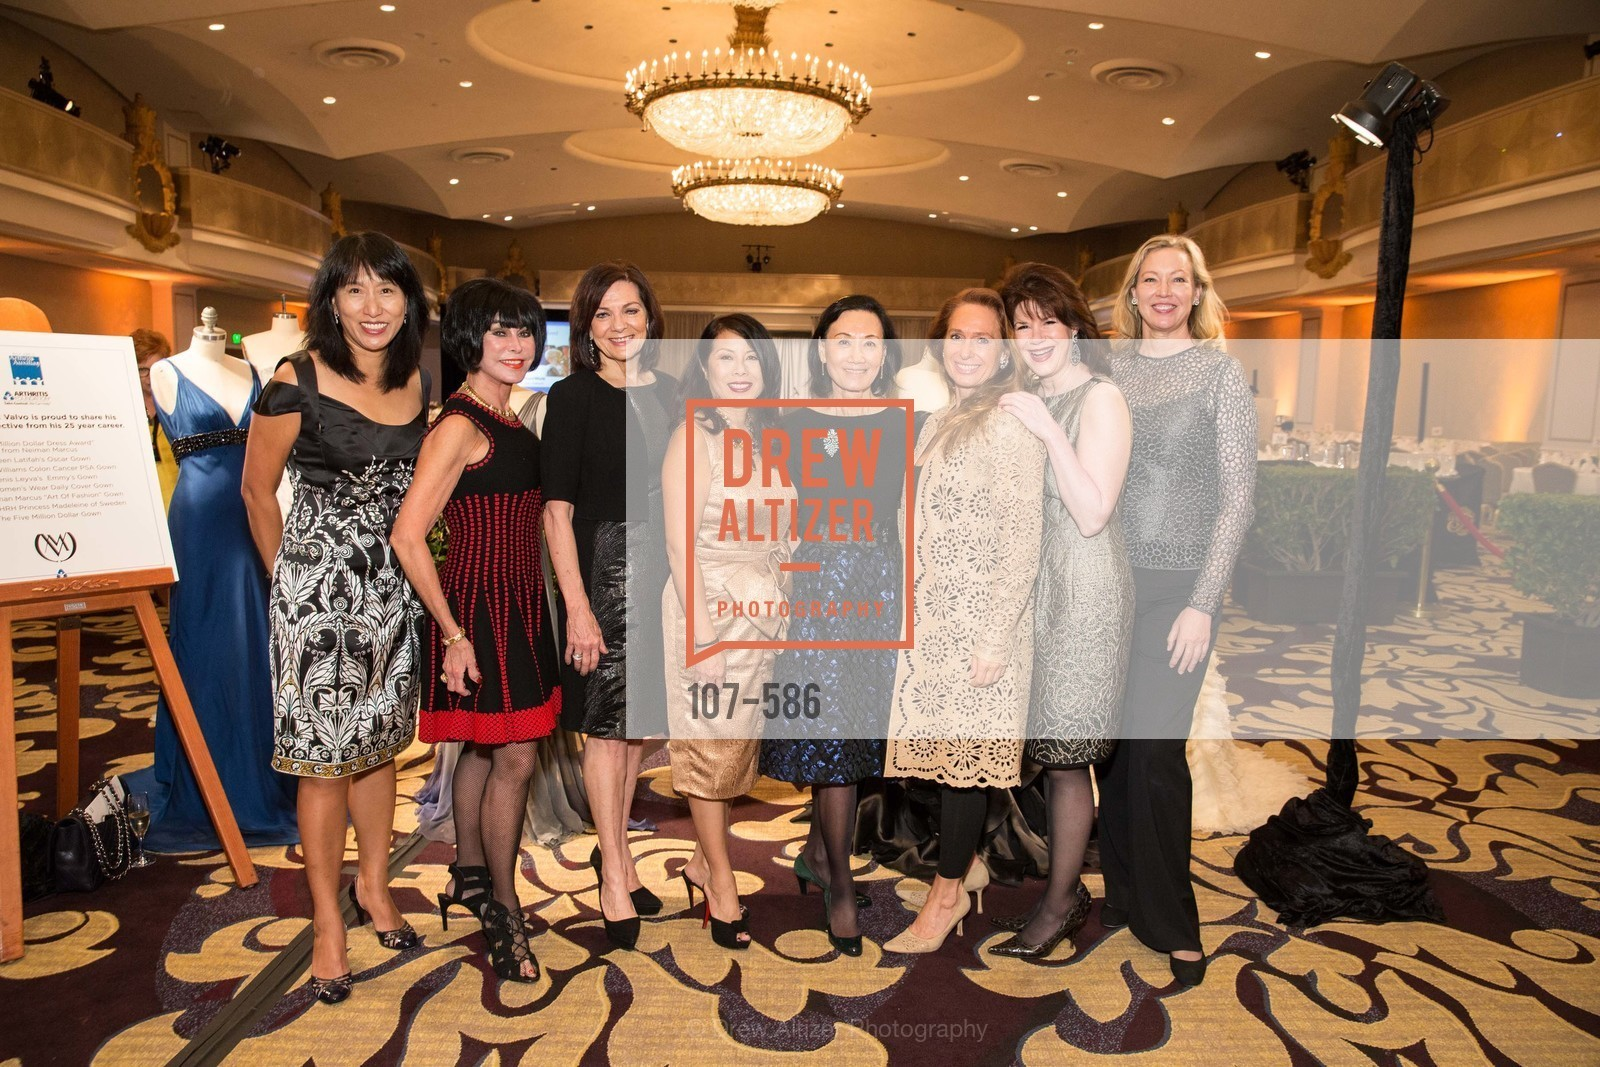 Sharon Juang, Marilyn Cabak, Pamela Culp, Sharon Seto, Iris Chan, Elisabeth Thieriot, Elaine Mellis, Betsy Vobach, 2014 Bay Area ARTHRITIS AUXILLIARY Benefit & Fashion Show, US, October 2nd, 2014,Drew Altizer, Drew Altizer Photography, full-service event agency, private events, San Francisco photographer, photographer California